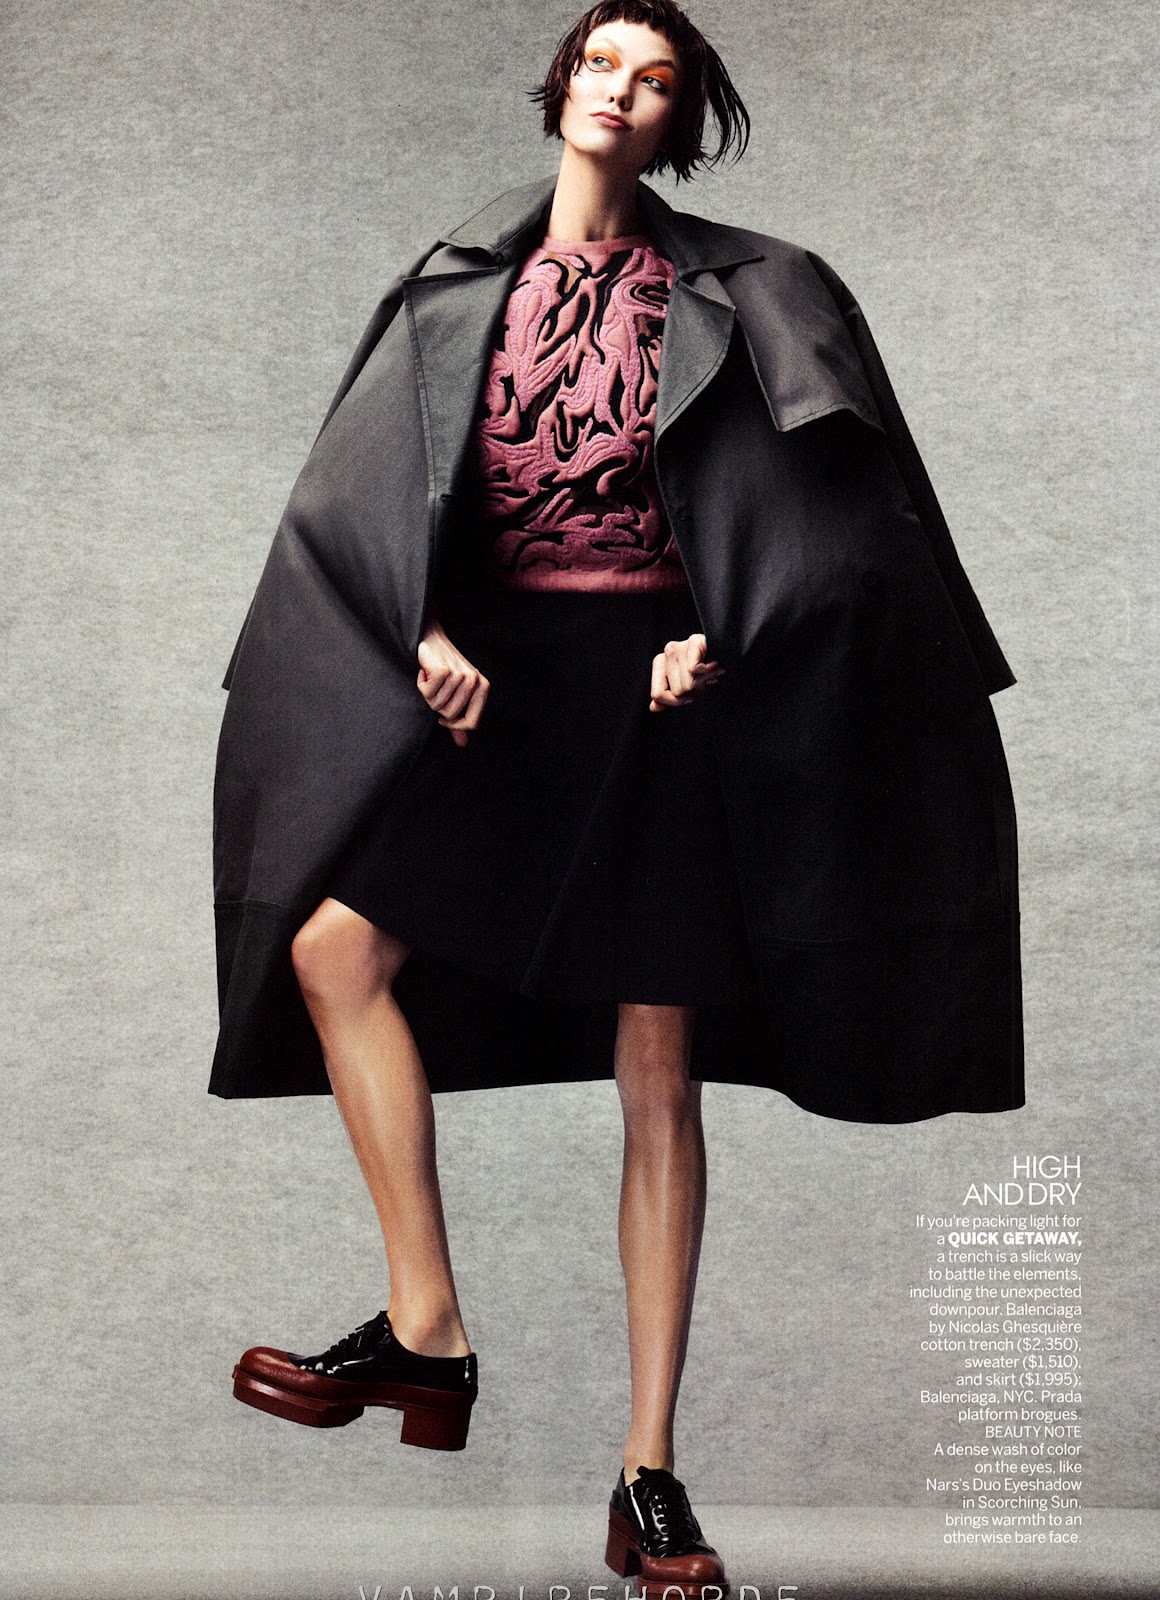 http://2.bp.blogspot.com/-sUMzJGfmeSQ/UFRxfIPg5mI/AAAAAAACJx8/RZIurfG-DK4/s1600/fashion_scans_remastered-craig_mcdean-vogue_usa-october_2012-scanned_by_vampirehorde-hq-7.jpg